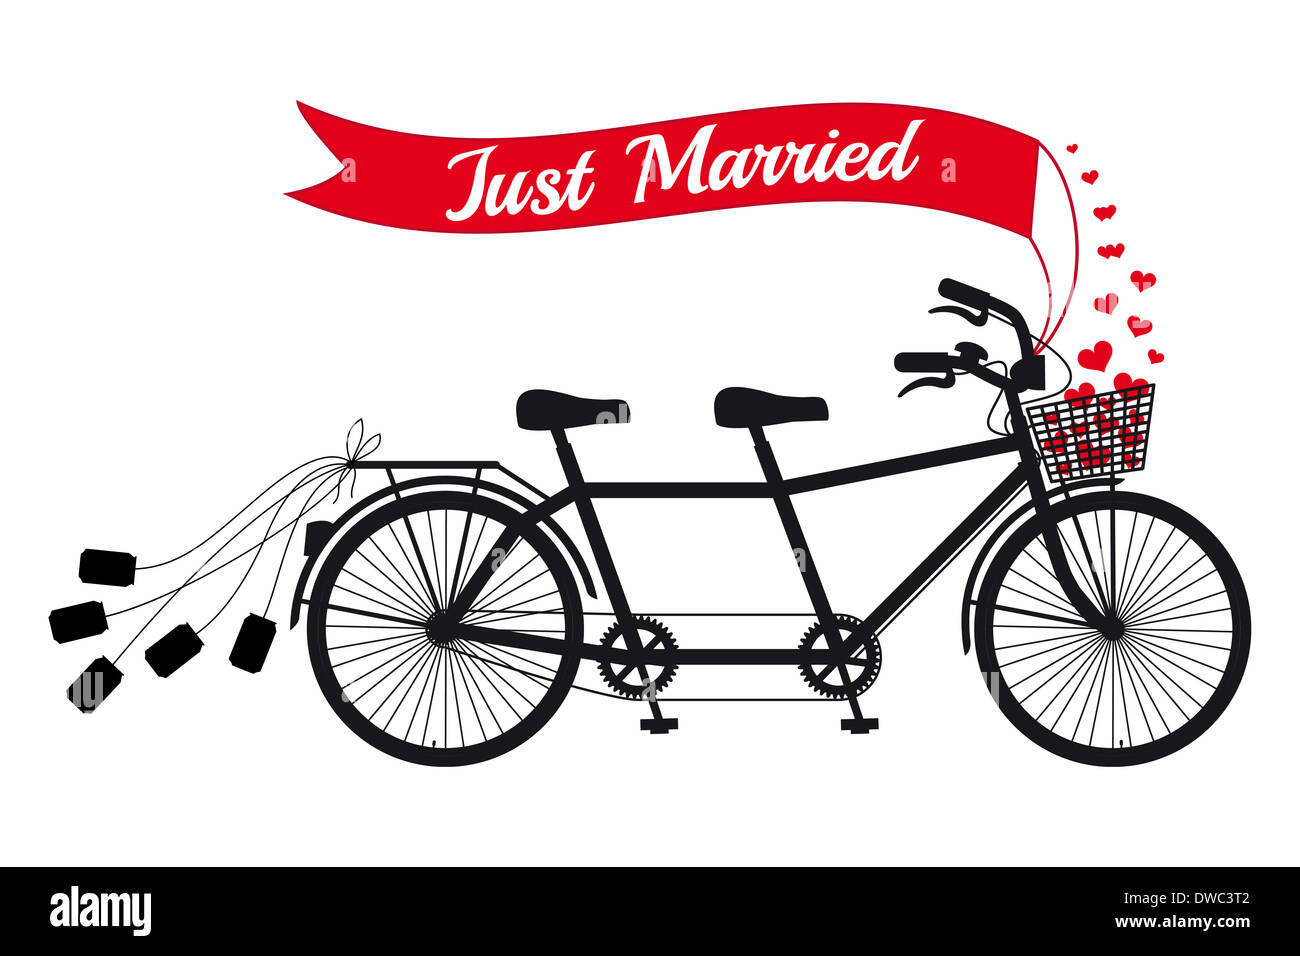 Just Married Wedding Tandem Bicycle Stock Photo Royalty